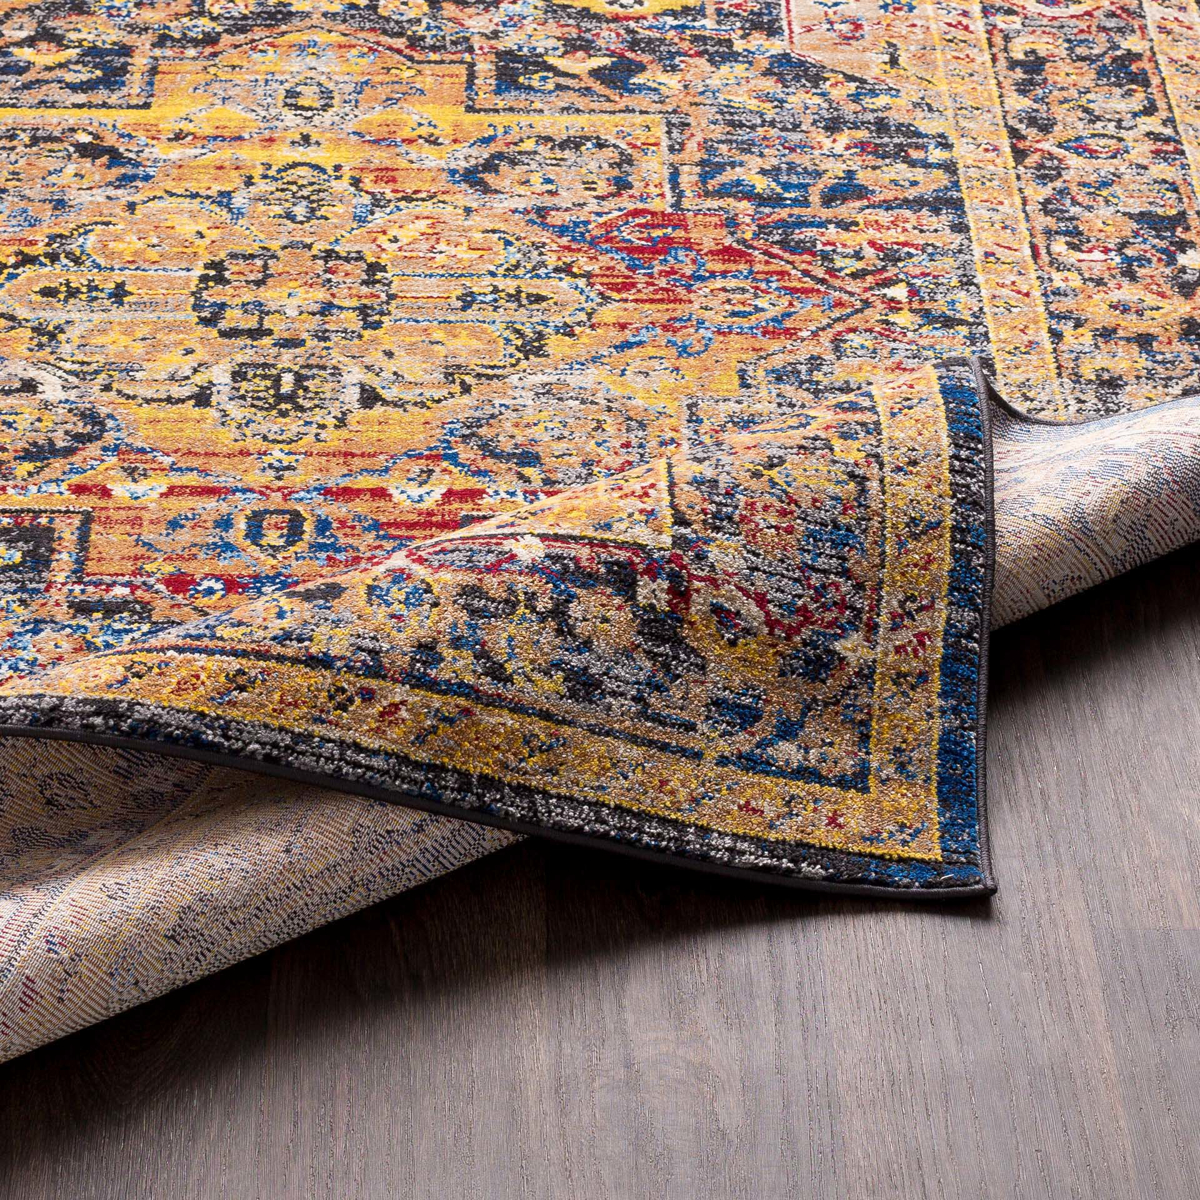 Unique Turkish rug with distinct yellow, blue and red pattern from the Surya Alchemy Collection - Backing  Close-up